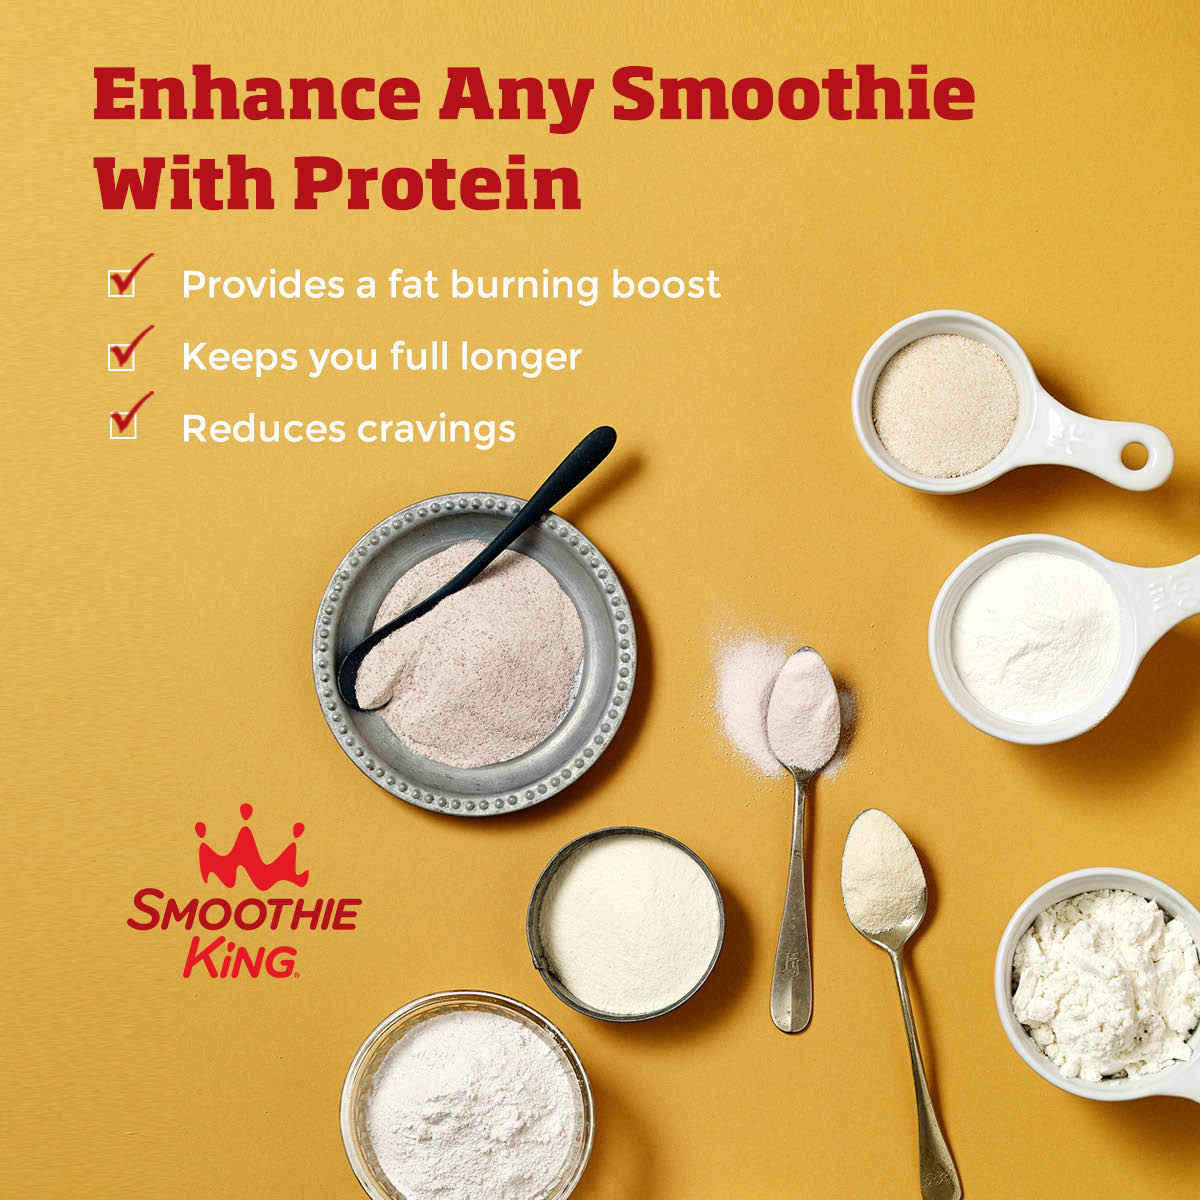 picture about Smoothie King Printable Coupon known as Smoothie King Discount coupons - Protein Healthier Fruit Smoothies